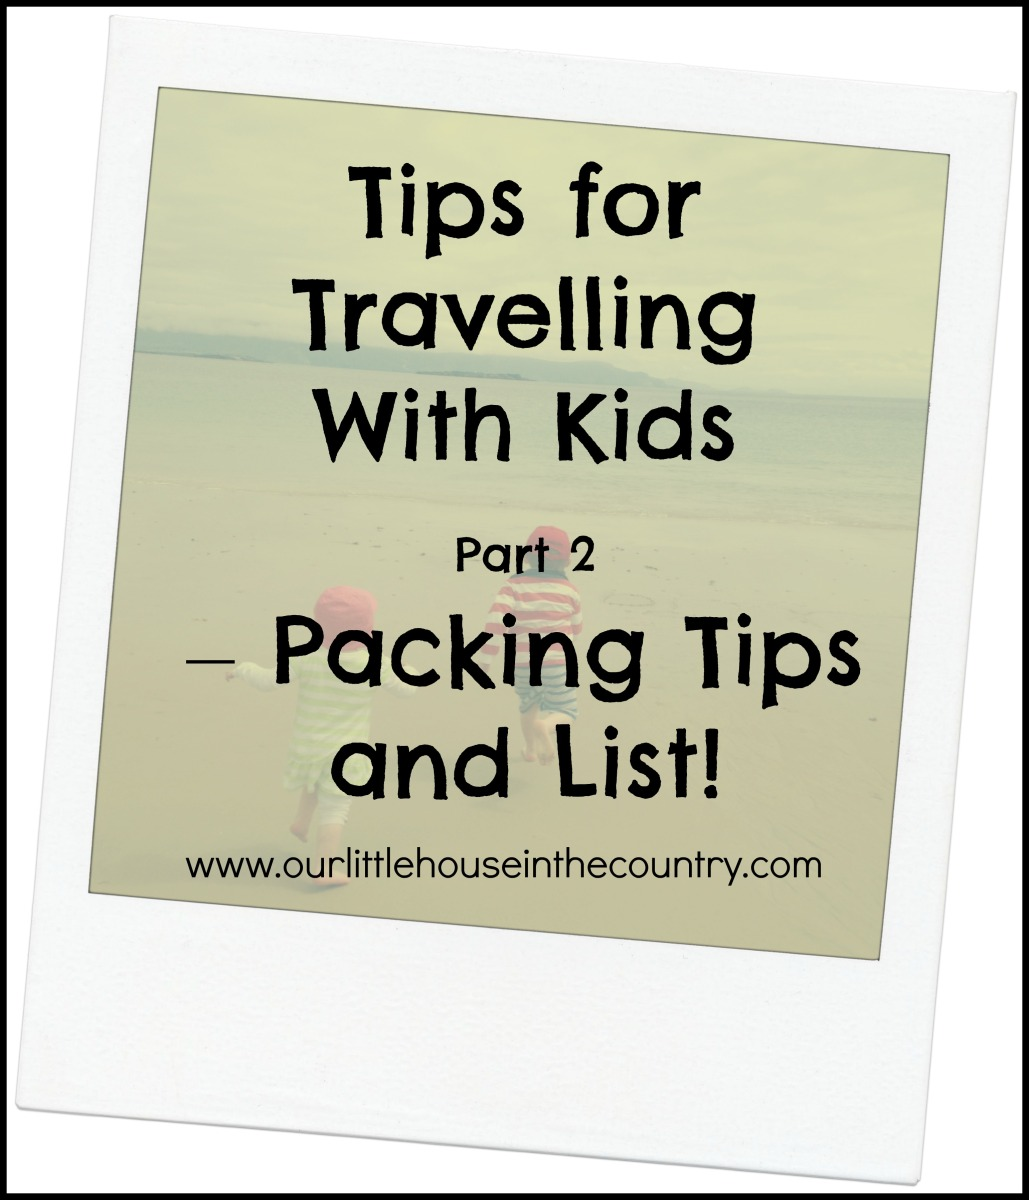 Tips for Travelling With Kids Part 2 - Packing Tips and List!